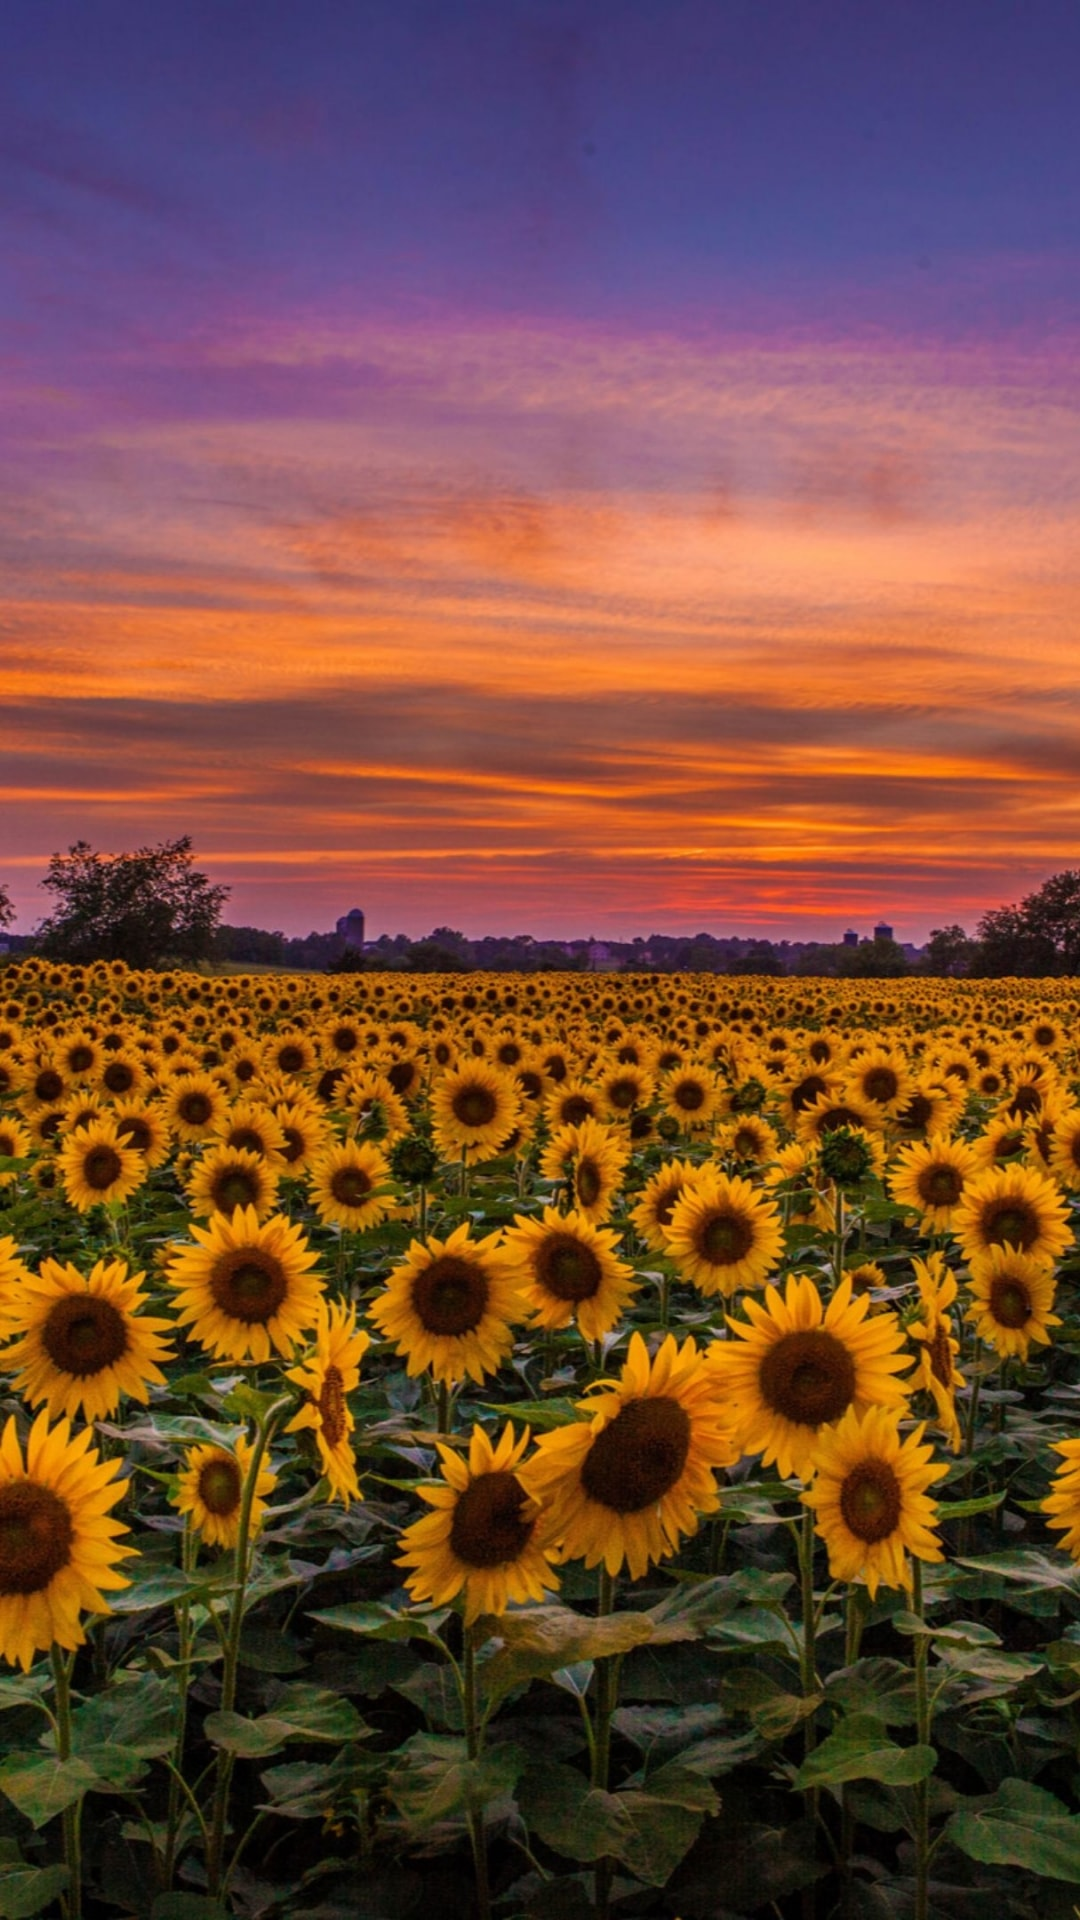 Iphone Sunflower Wallpaper Kolpaper Awesome Free Hd Wallpapers